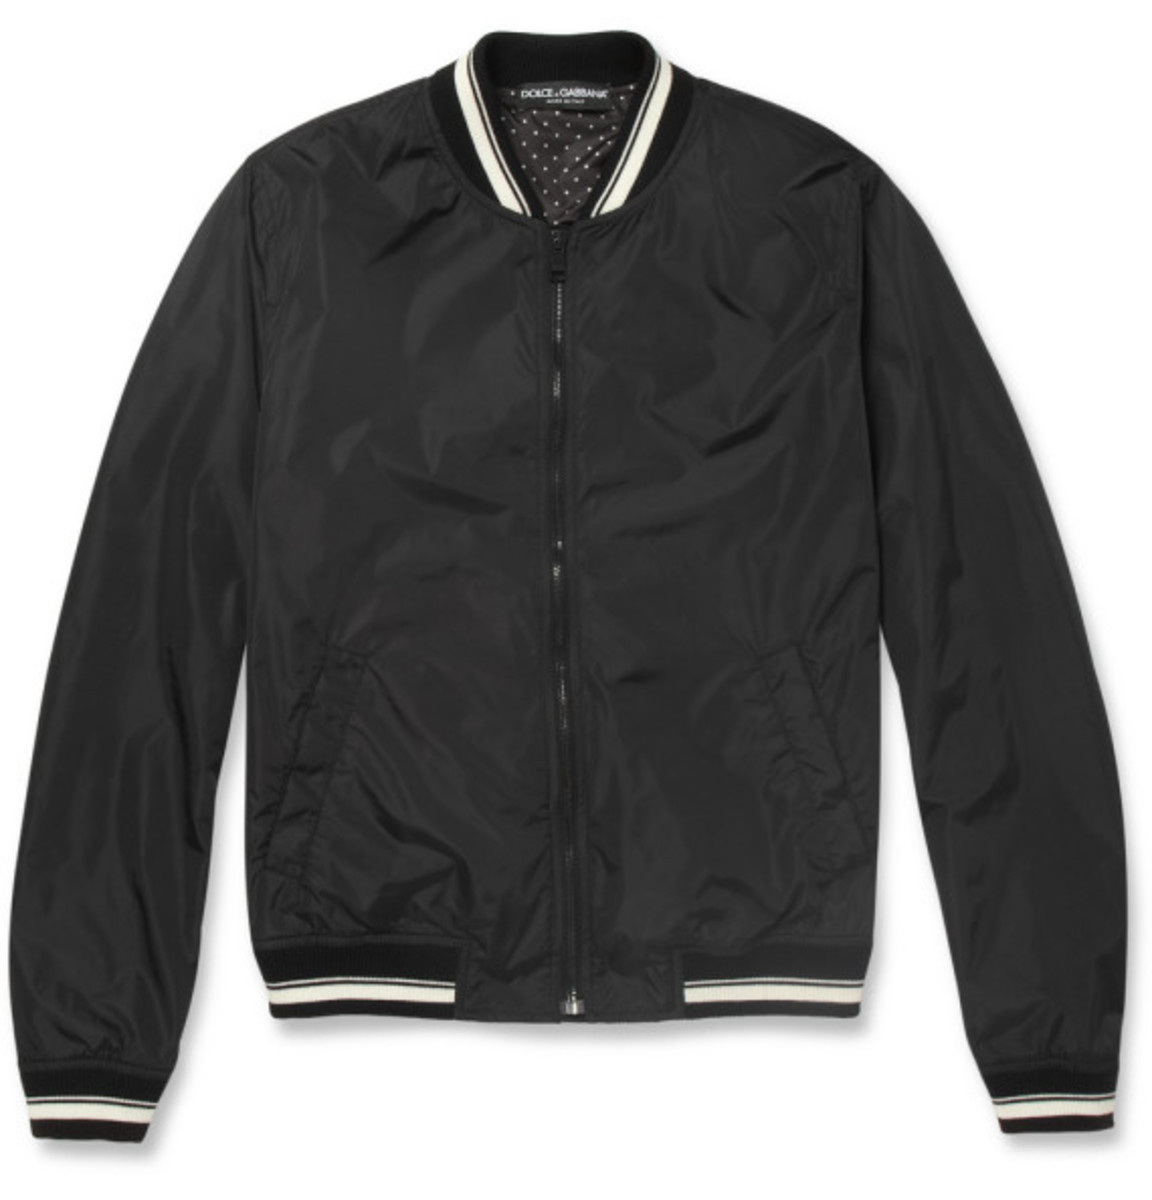 Spring 2014 Trends - Top 10 Bomber Jackets Available Now - 4